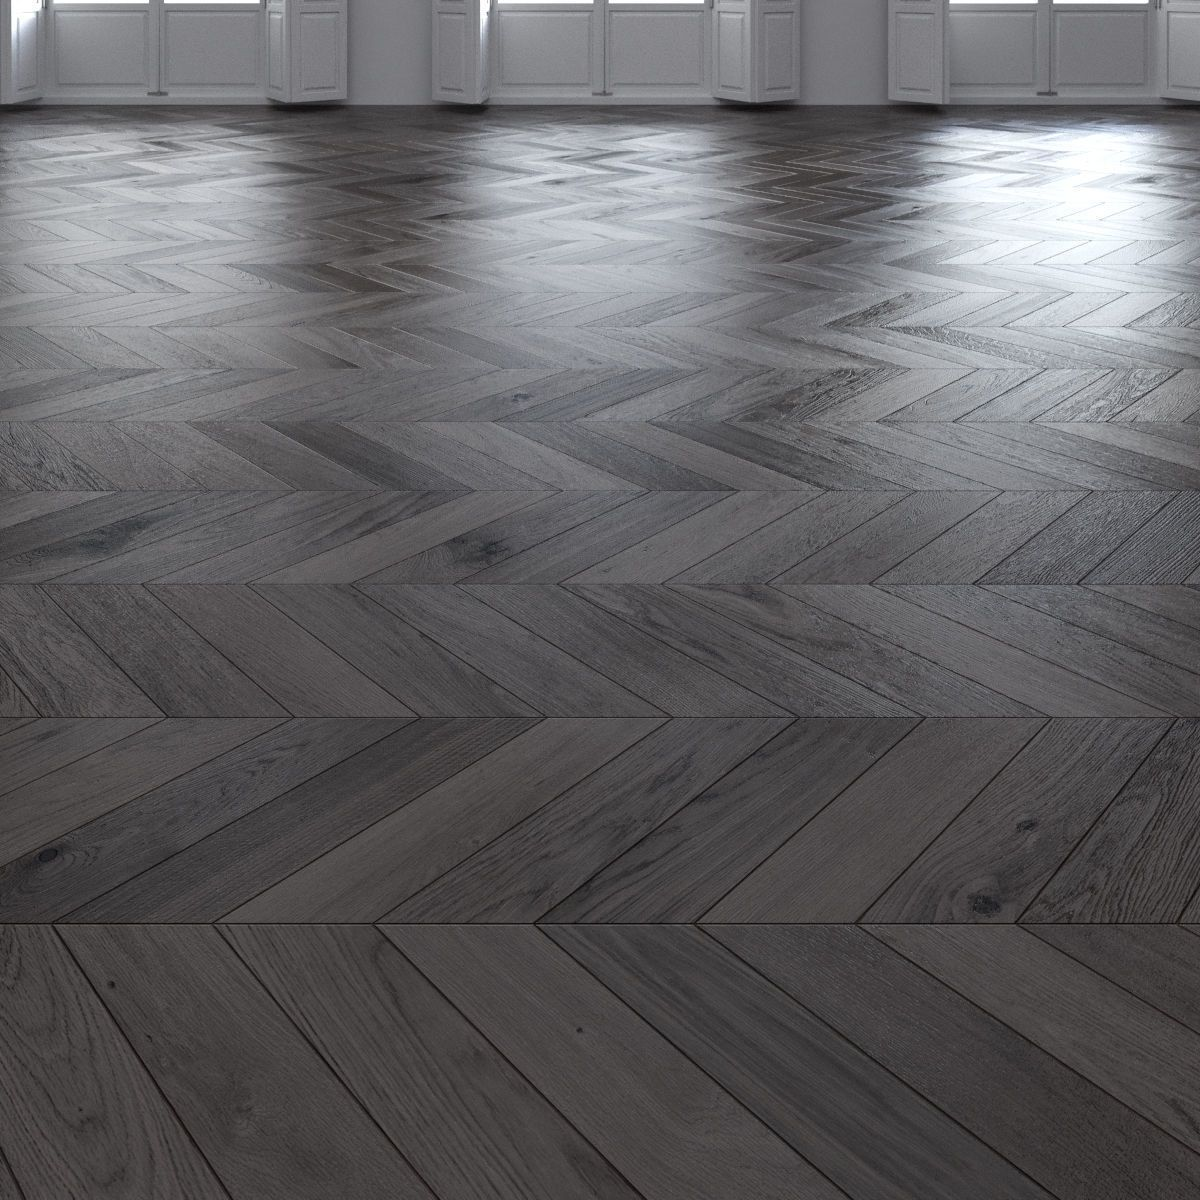 Pin by CGTrader on 3D Architectural Interior Flooring